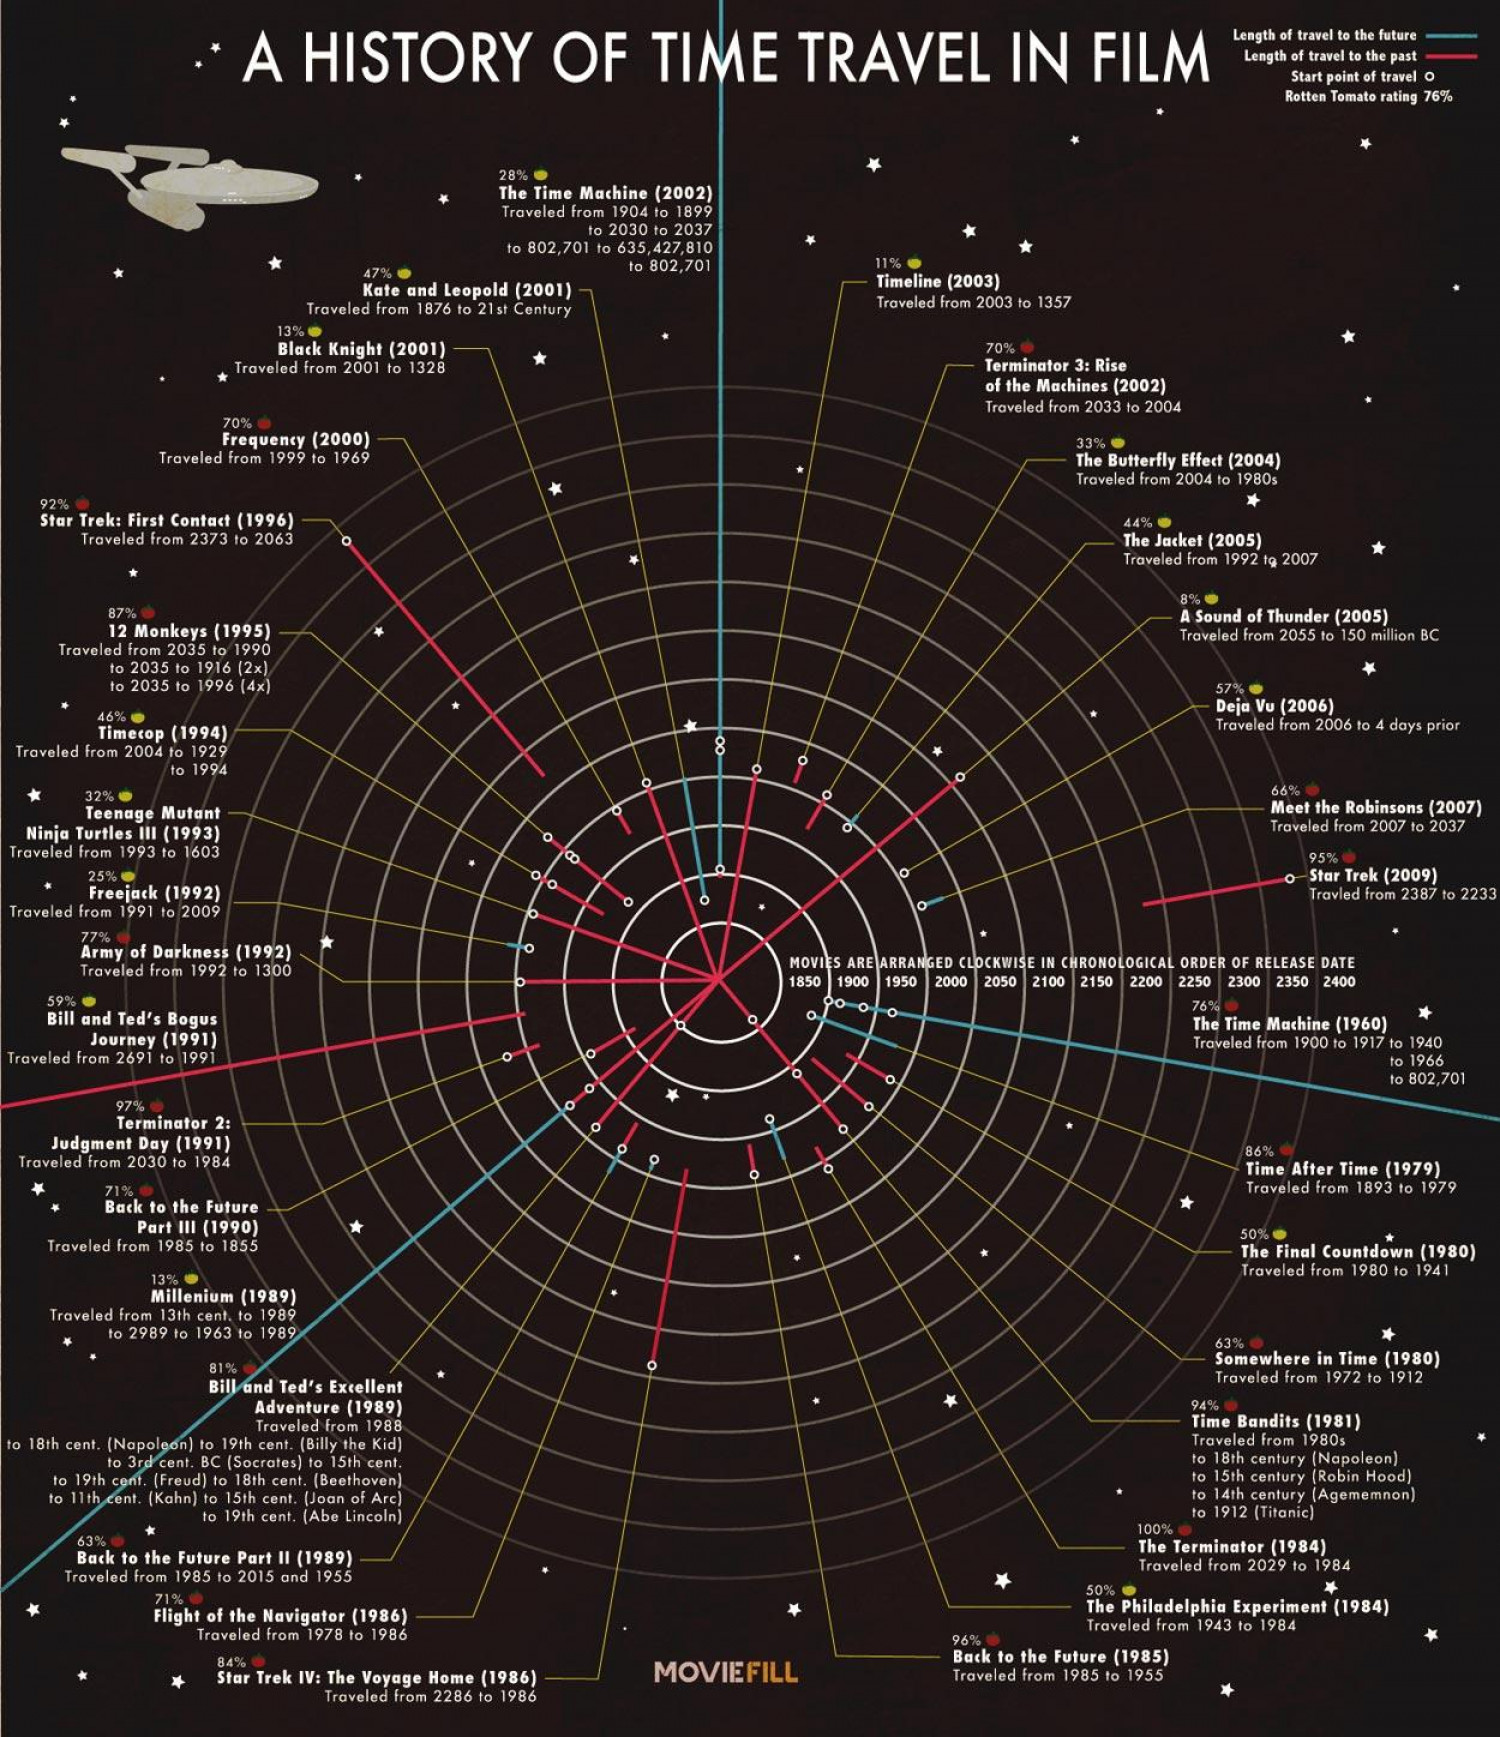 A HISTORY OF TIME TRAVEL IN FILMS Infographic